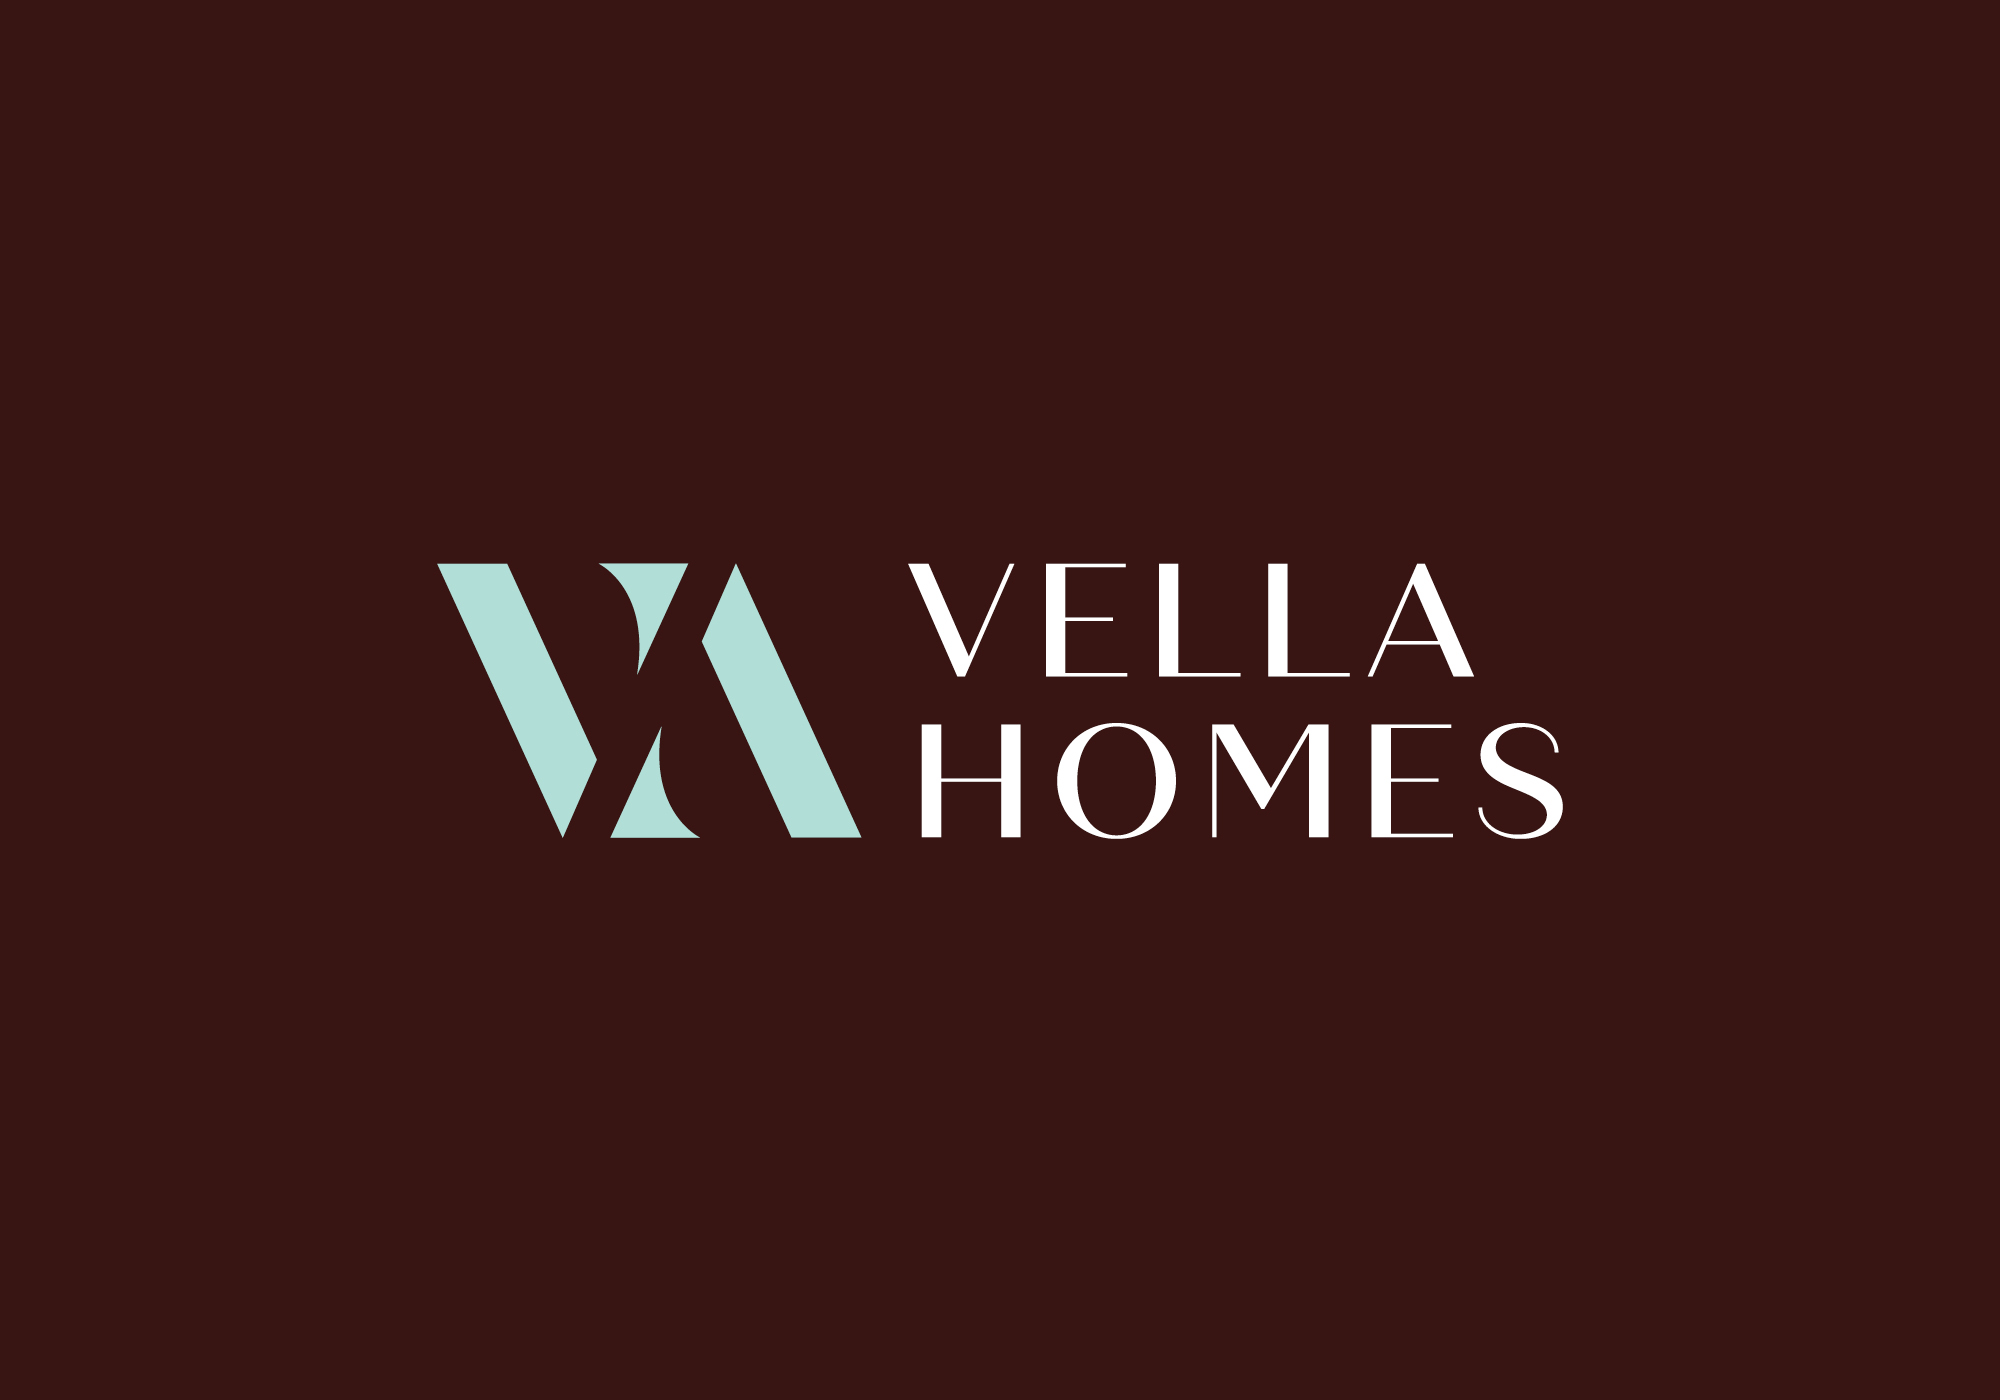 Cover image: Vella Homes